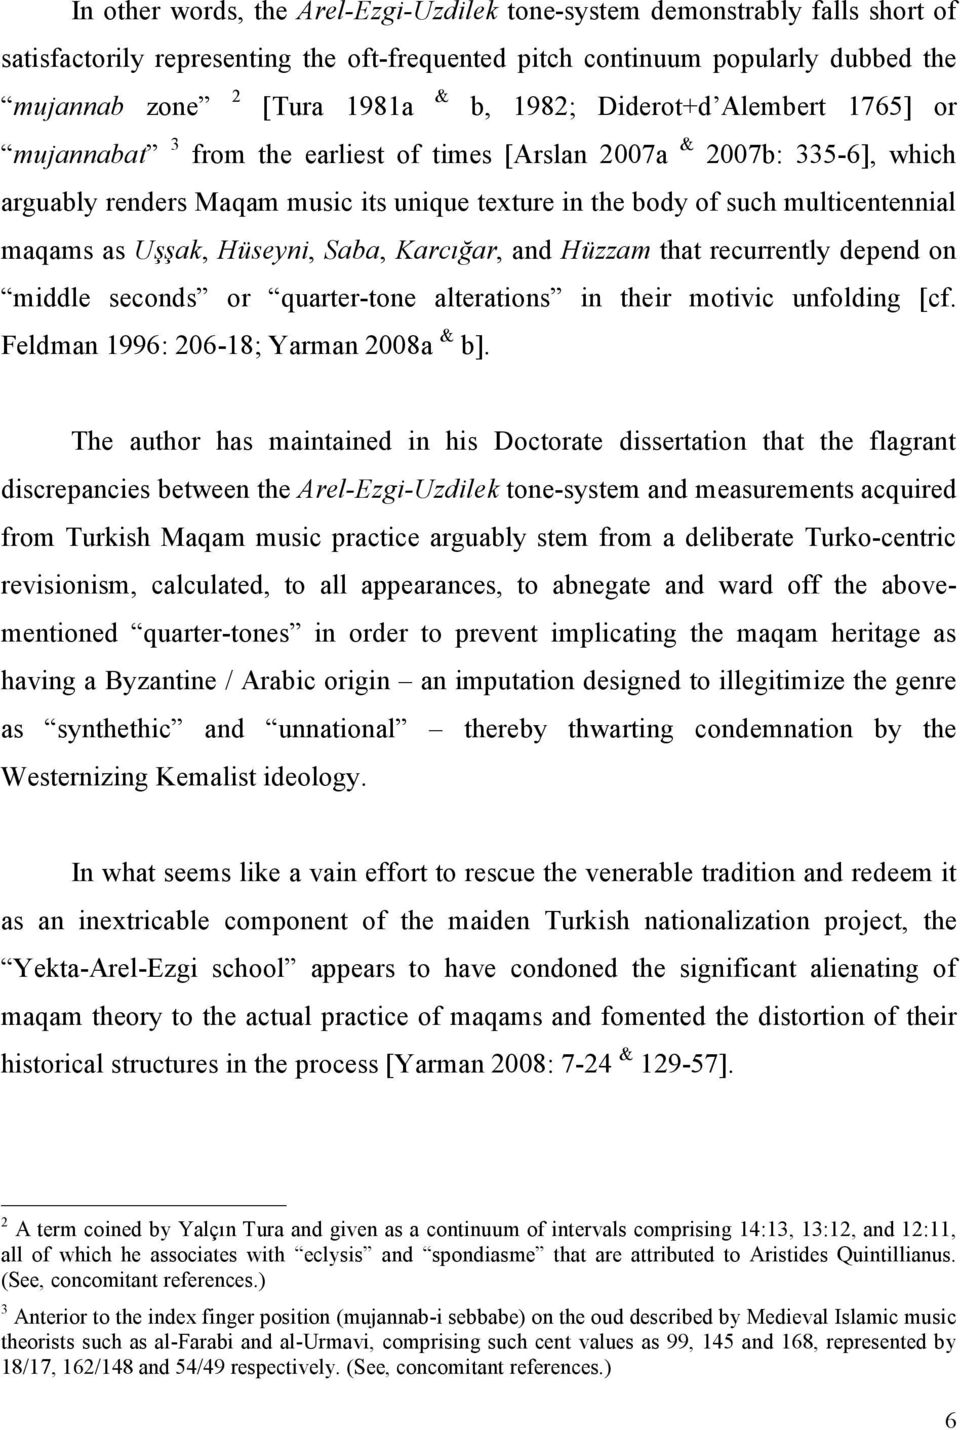 maqams as Uşşak, Hüseyni, Saba, Karcığar, and Hüzzam that recurrently depend on middle seconds or quarter-tone alterations in their motivic unfolding [cf. Feldman 1996: 206-18; Yarman 2008a & b].